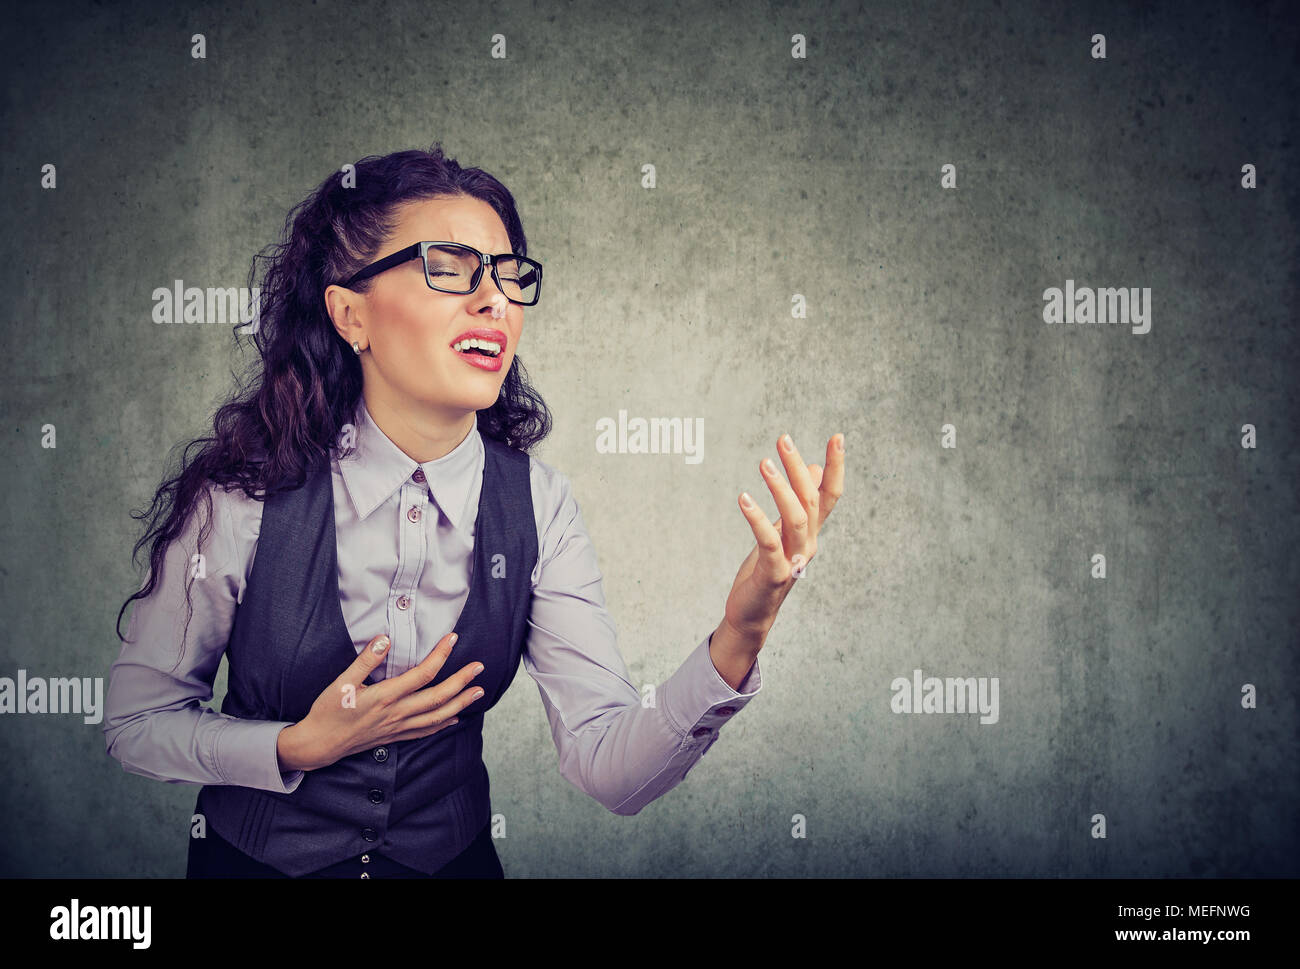 Desperate business woman screaming asking for help forgiveness - Stock Image